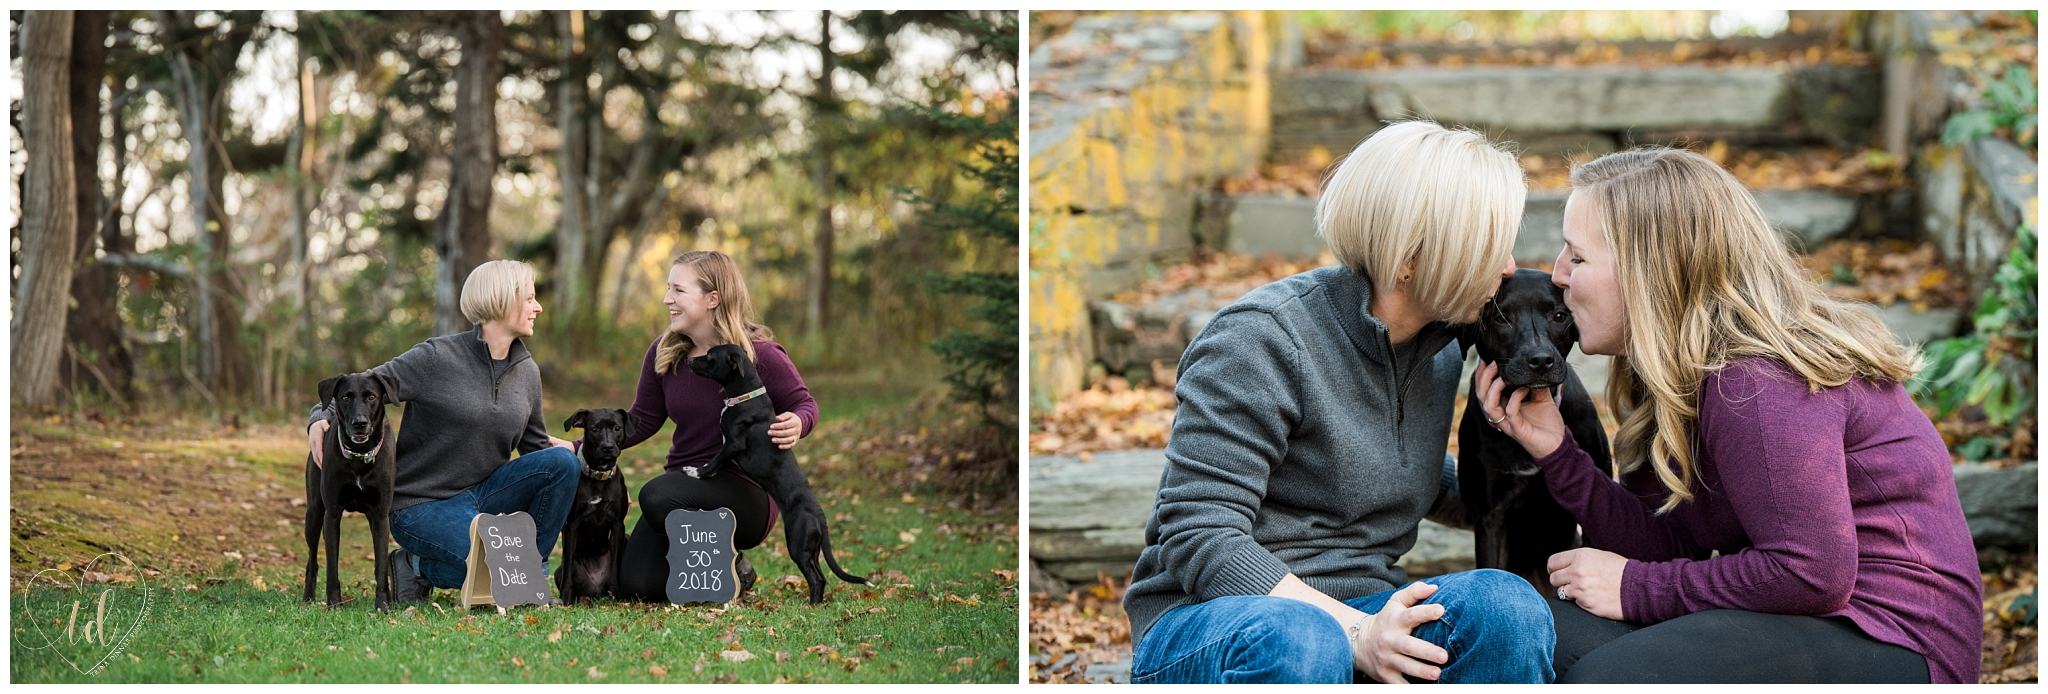 Emily and Kim with their dogs during a Maine photography session for their save the date.